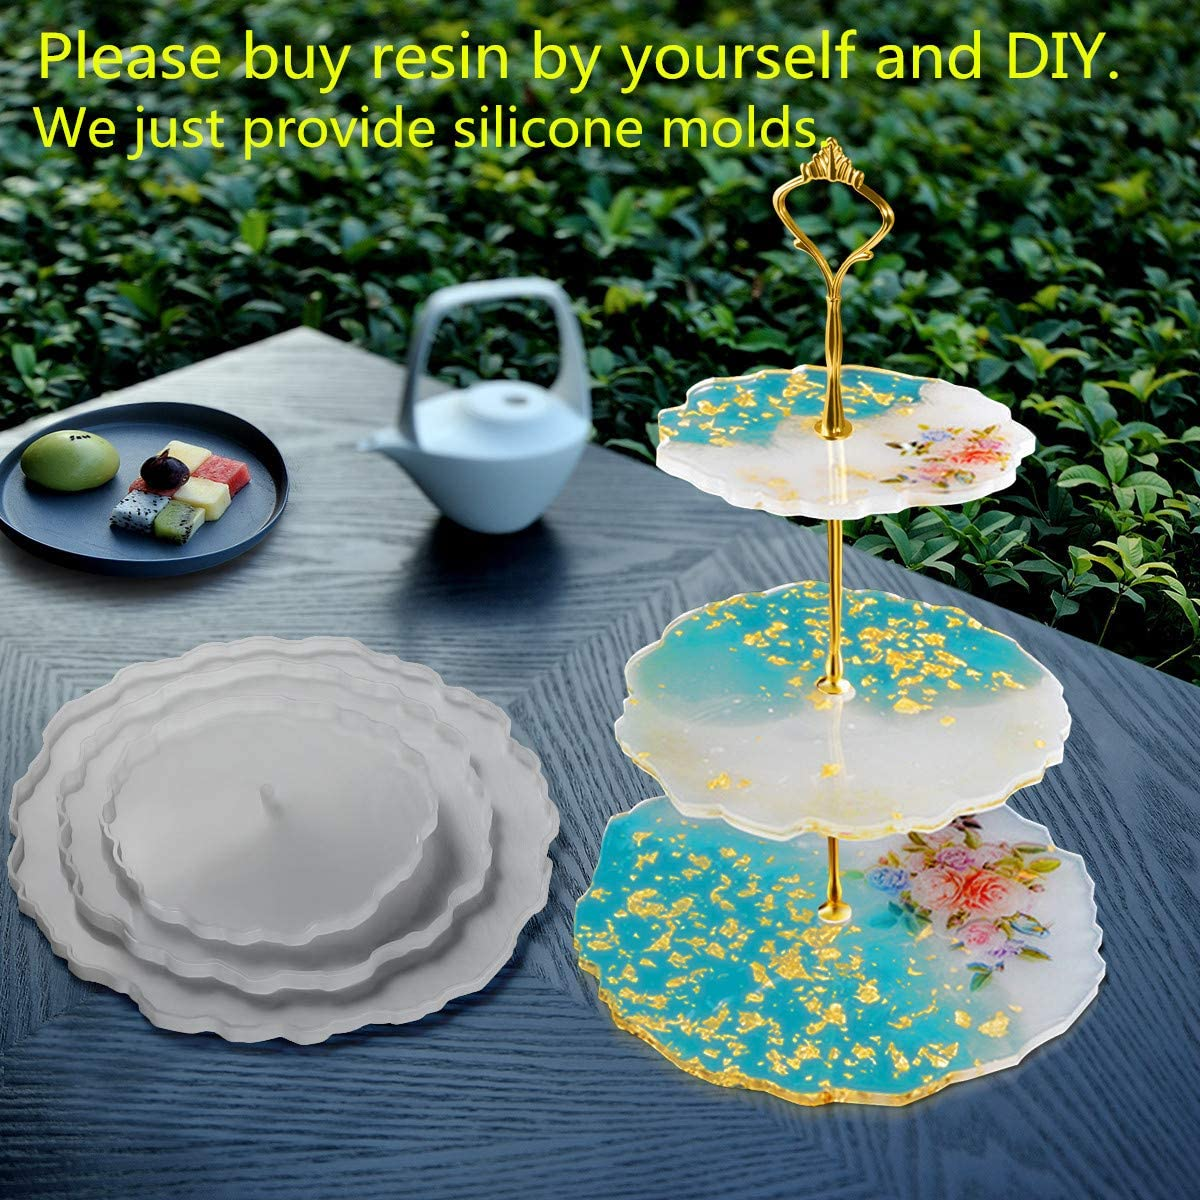 3 Tier Cake Stand Resin Tray Molds Silicone Molds for Resin,DIY Irregular Epoxy Resin Casting Mold Home Decoration Craft with 3 Pcs Tray Brackets